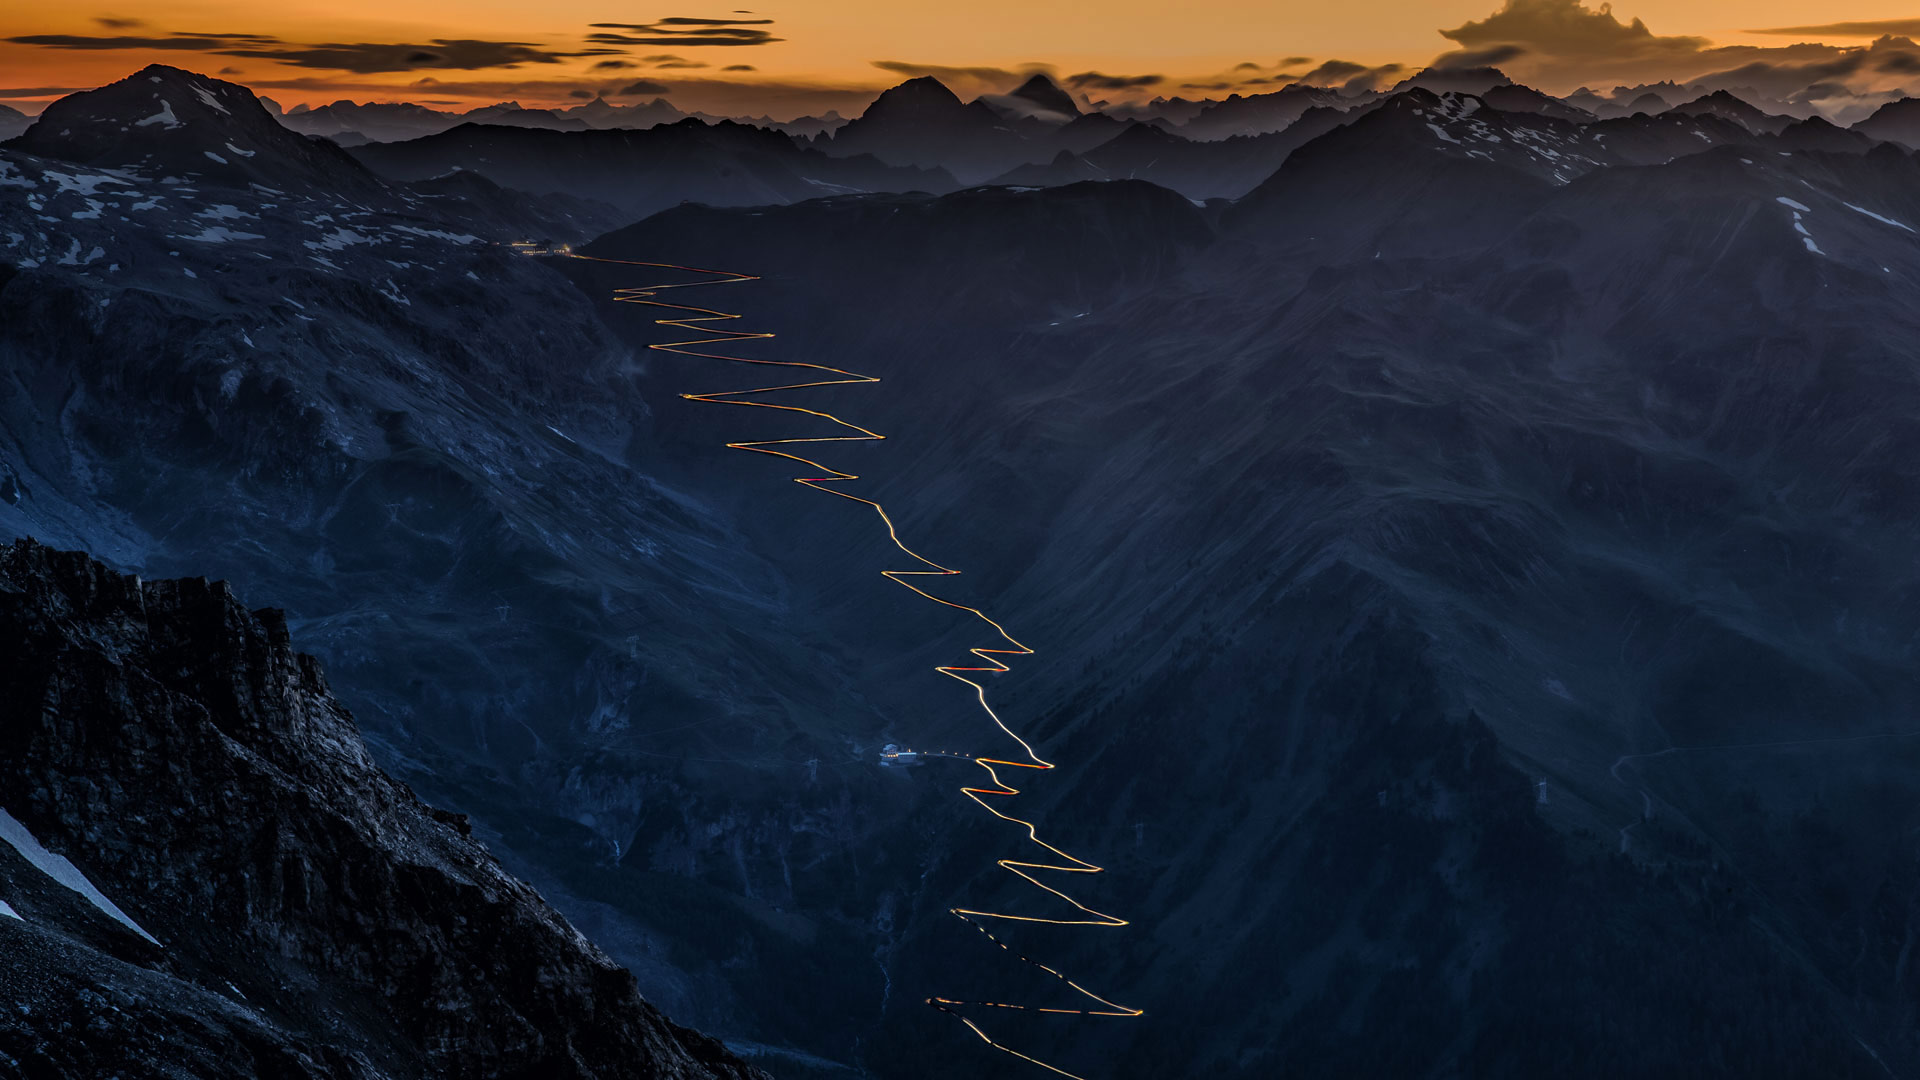 Stelvio Pass in the Ortler Alps, Italy (© Sandro Bisaro/Getty Images)